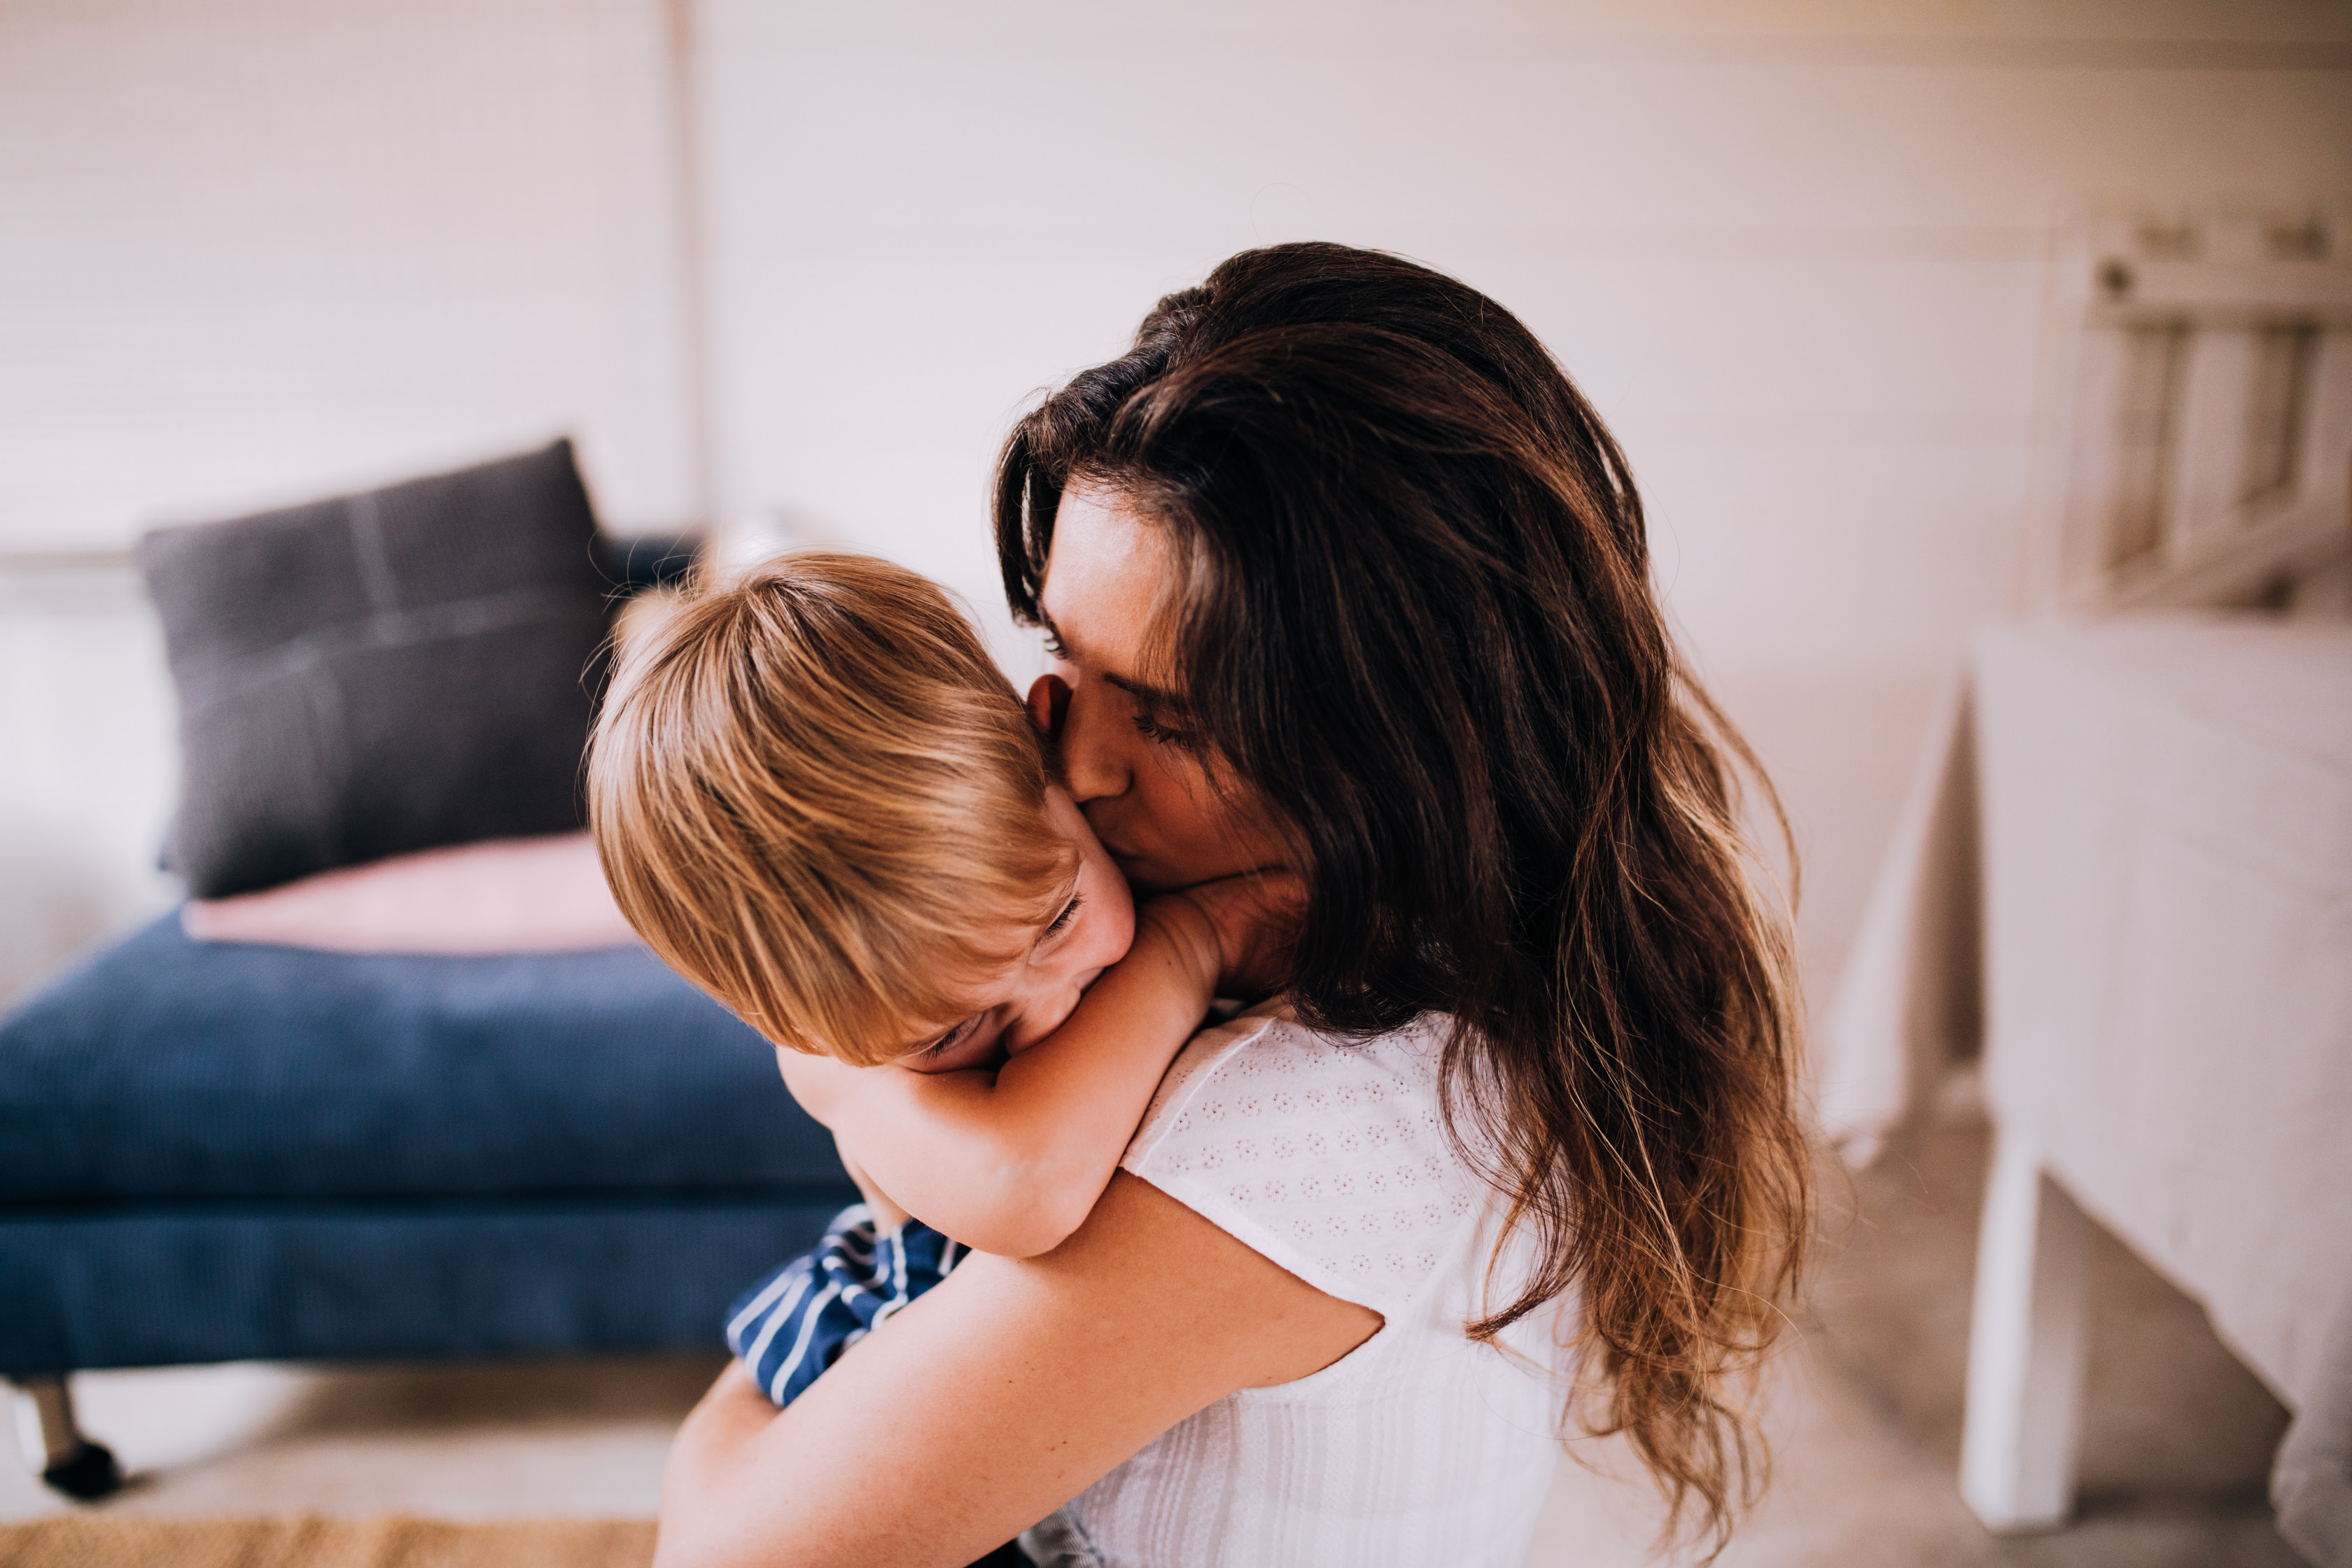 child-family-mother-toddler-son-together-happy-kiss-emotion-feelings_t20_rombRb.jpg